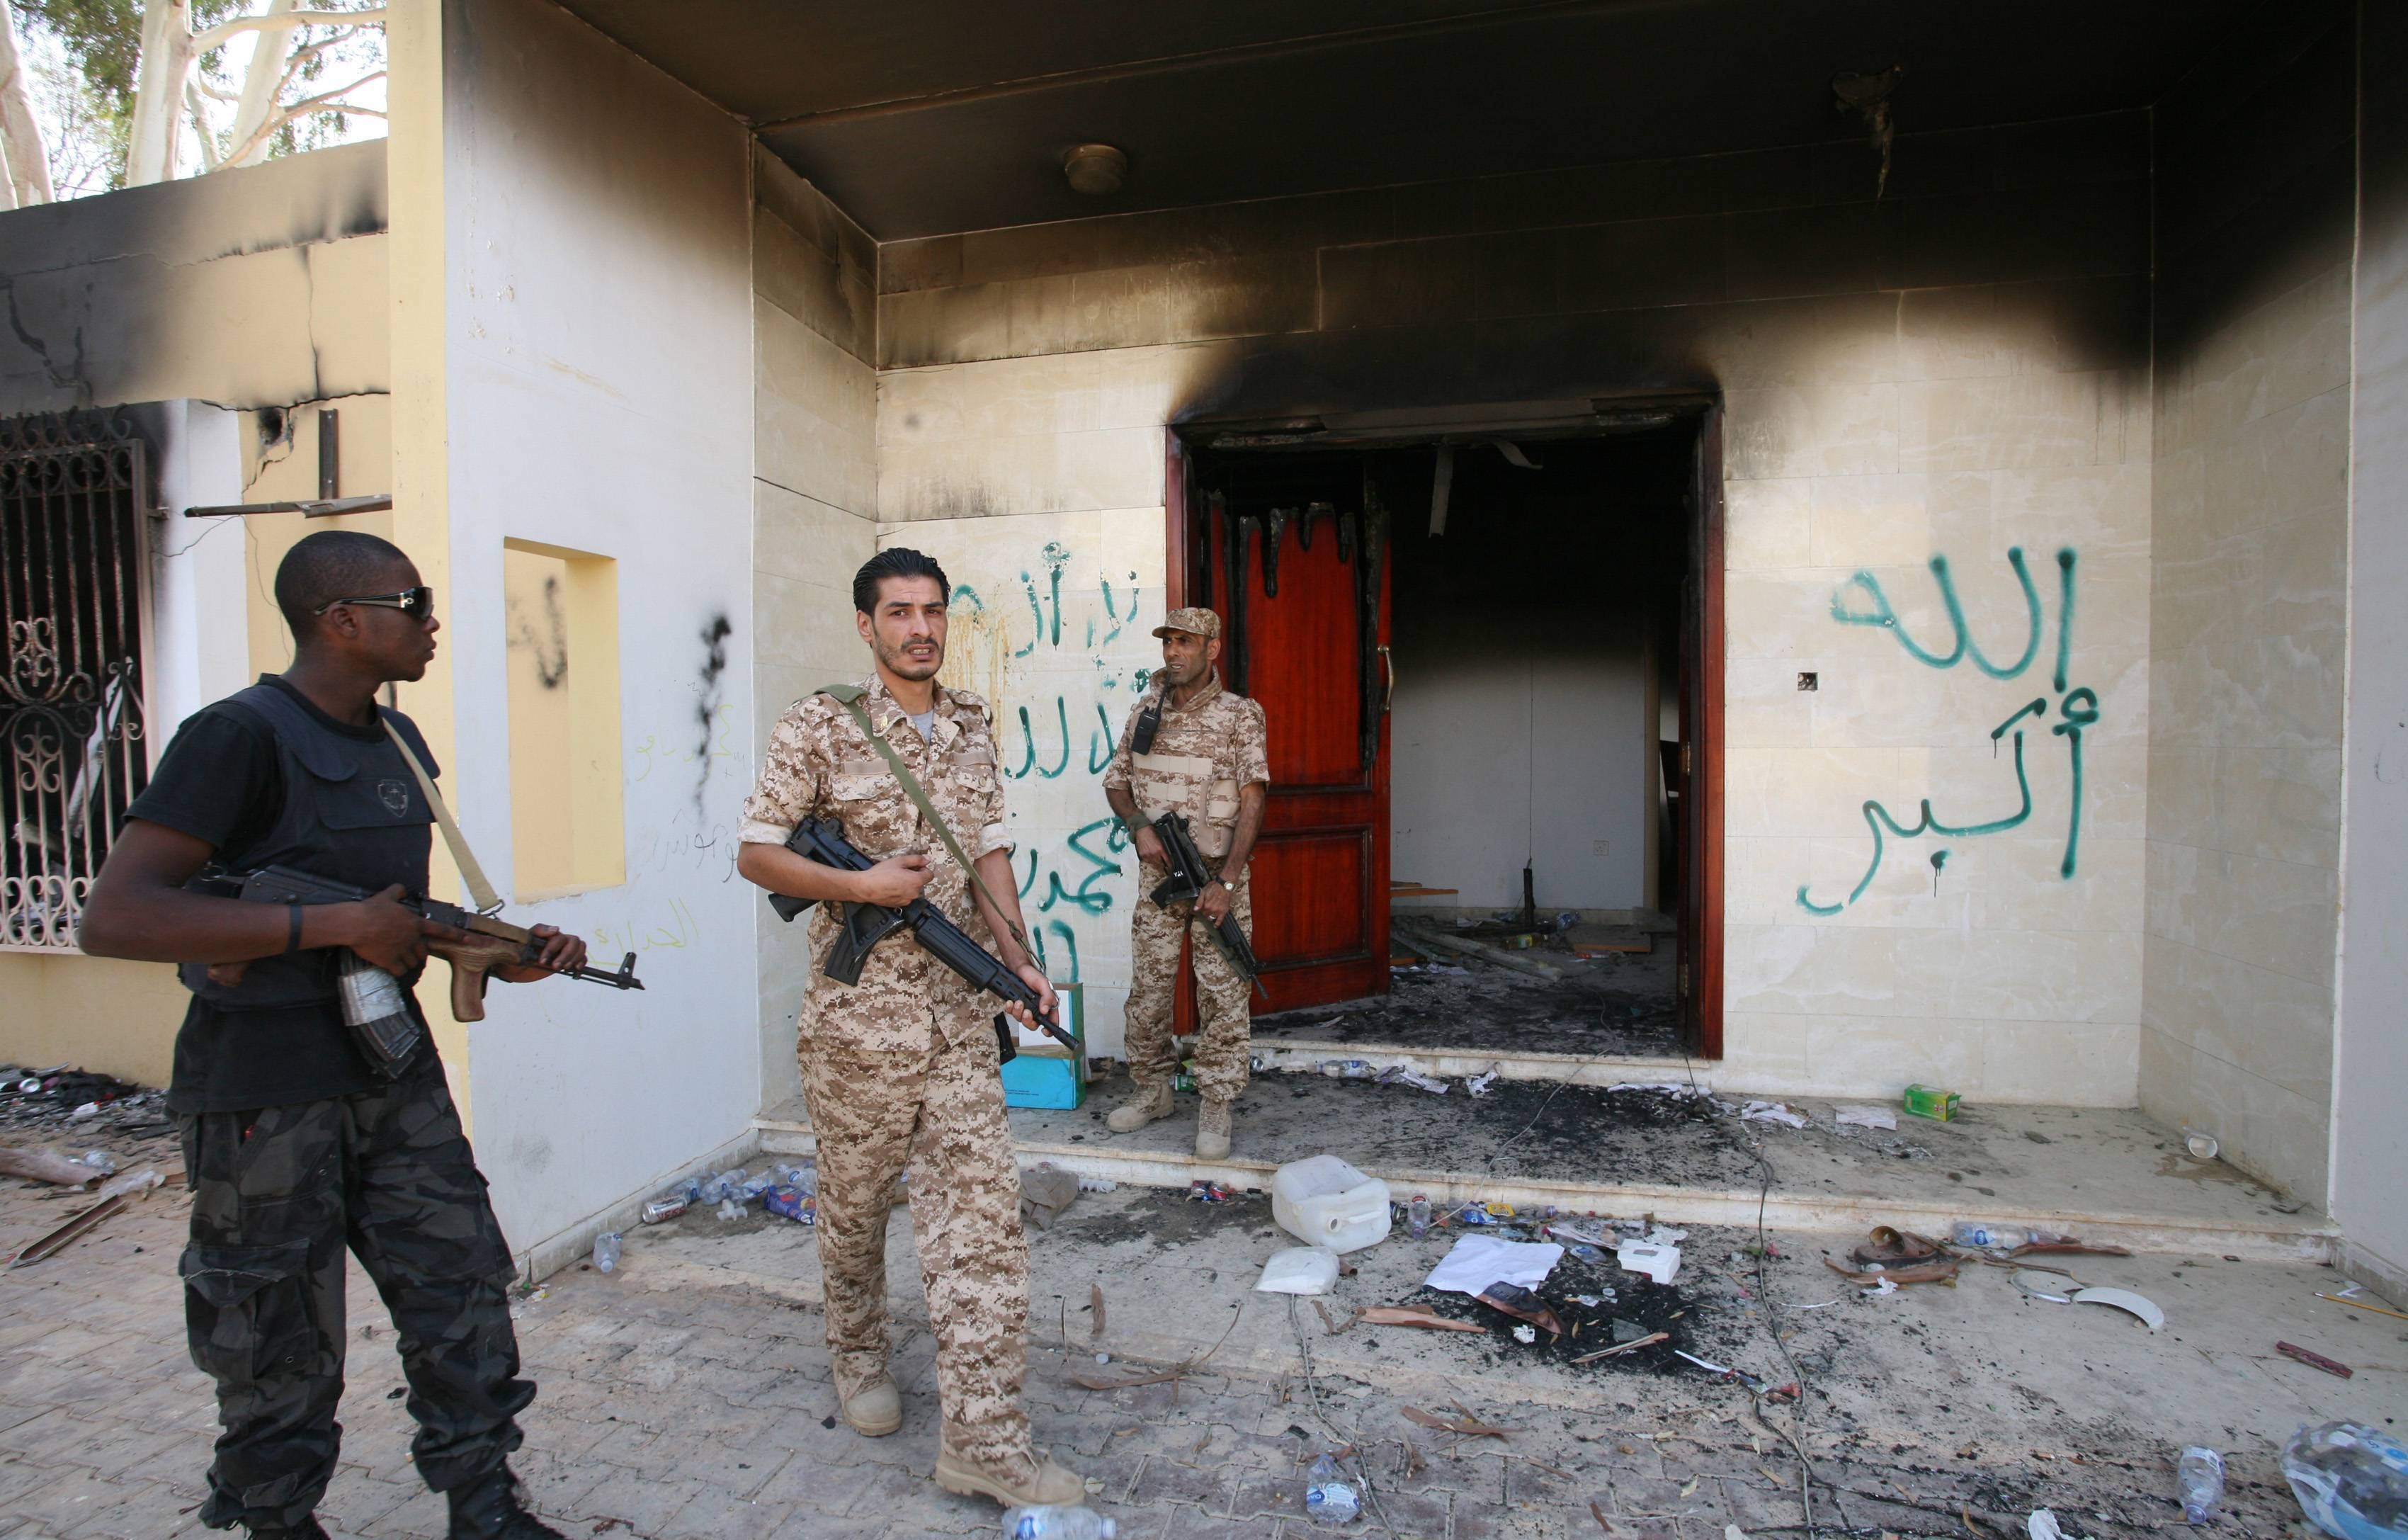 Libyan military guards check one of the U.S. consulate's burned buildings two days after the deadly attack on Sept. 11, 2012, in Benghazi.